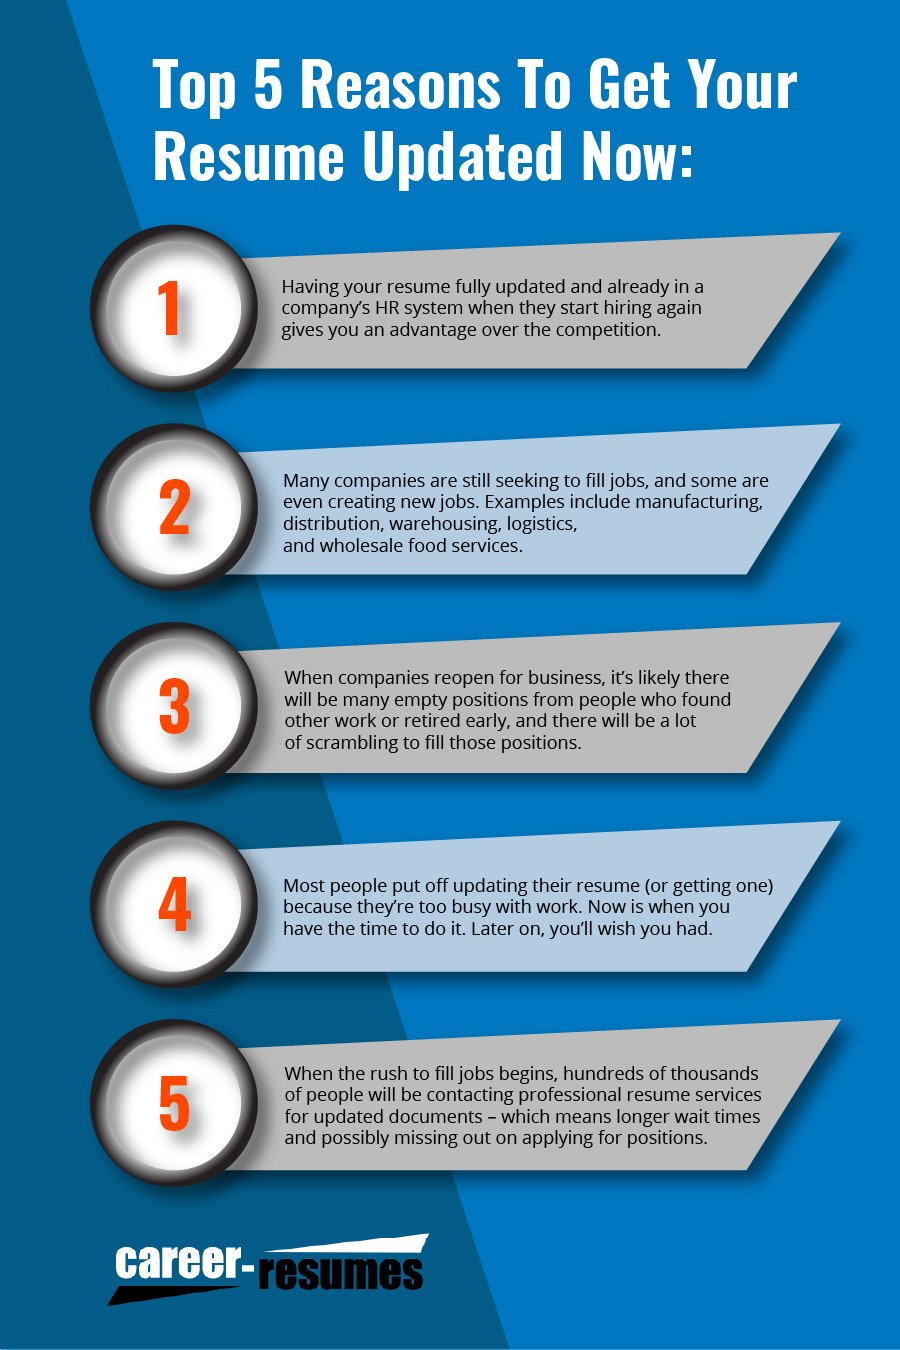 why you should get your resume updated now. infographic listing 5 reasons.